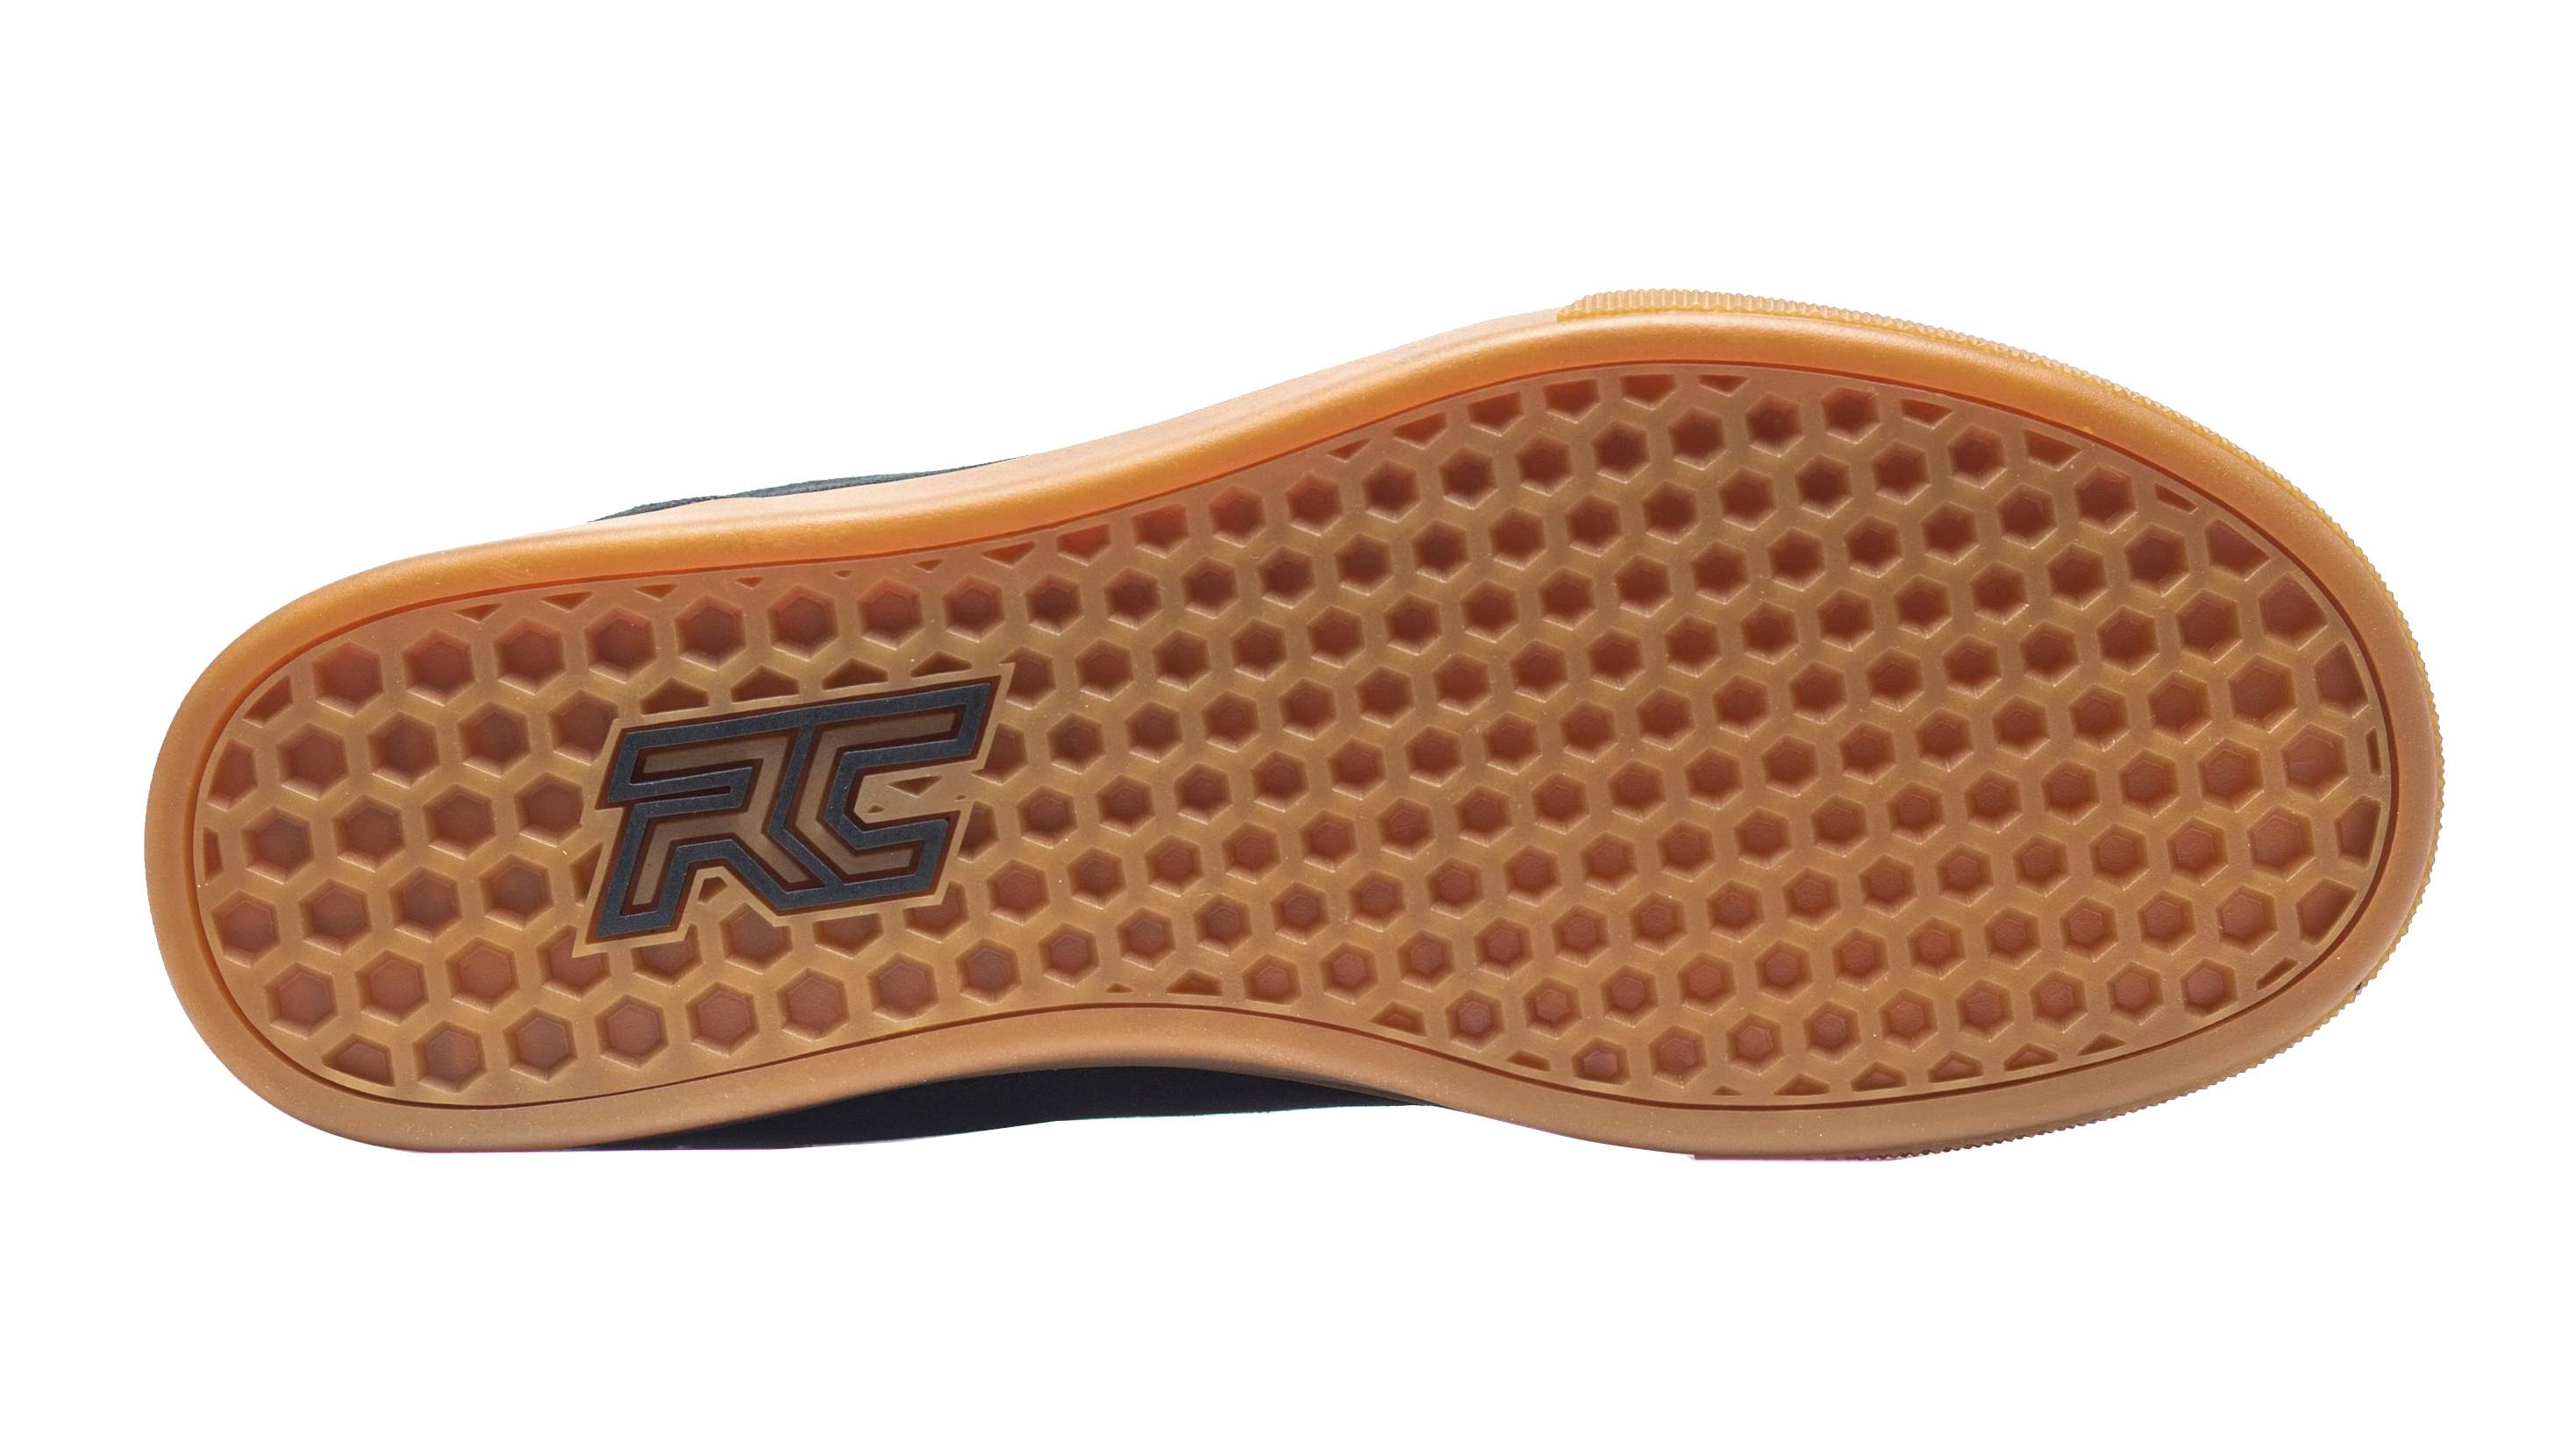 Example of Flat Cycling Shoes